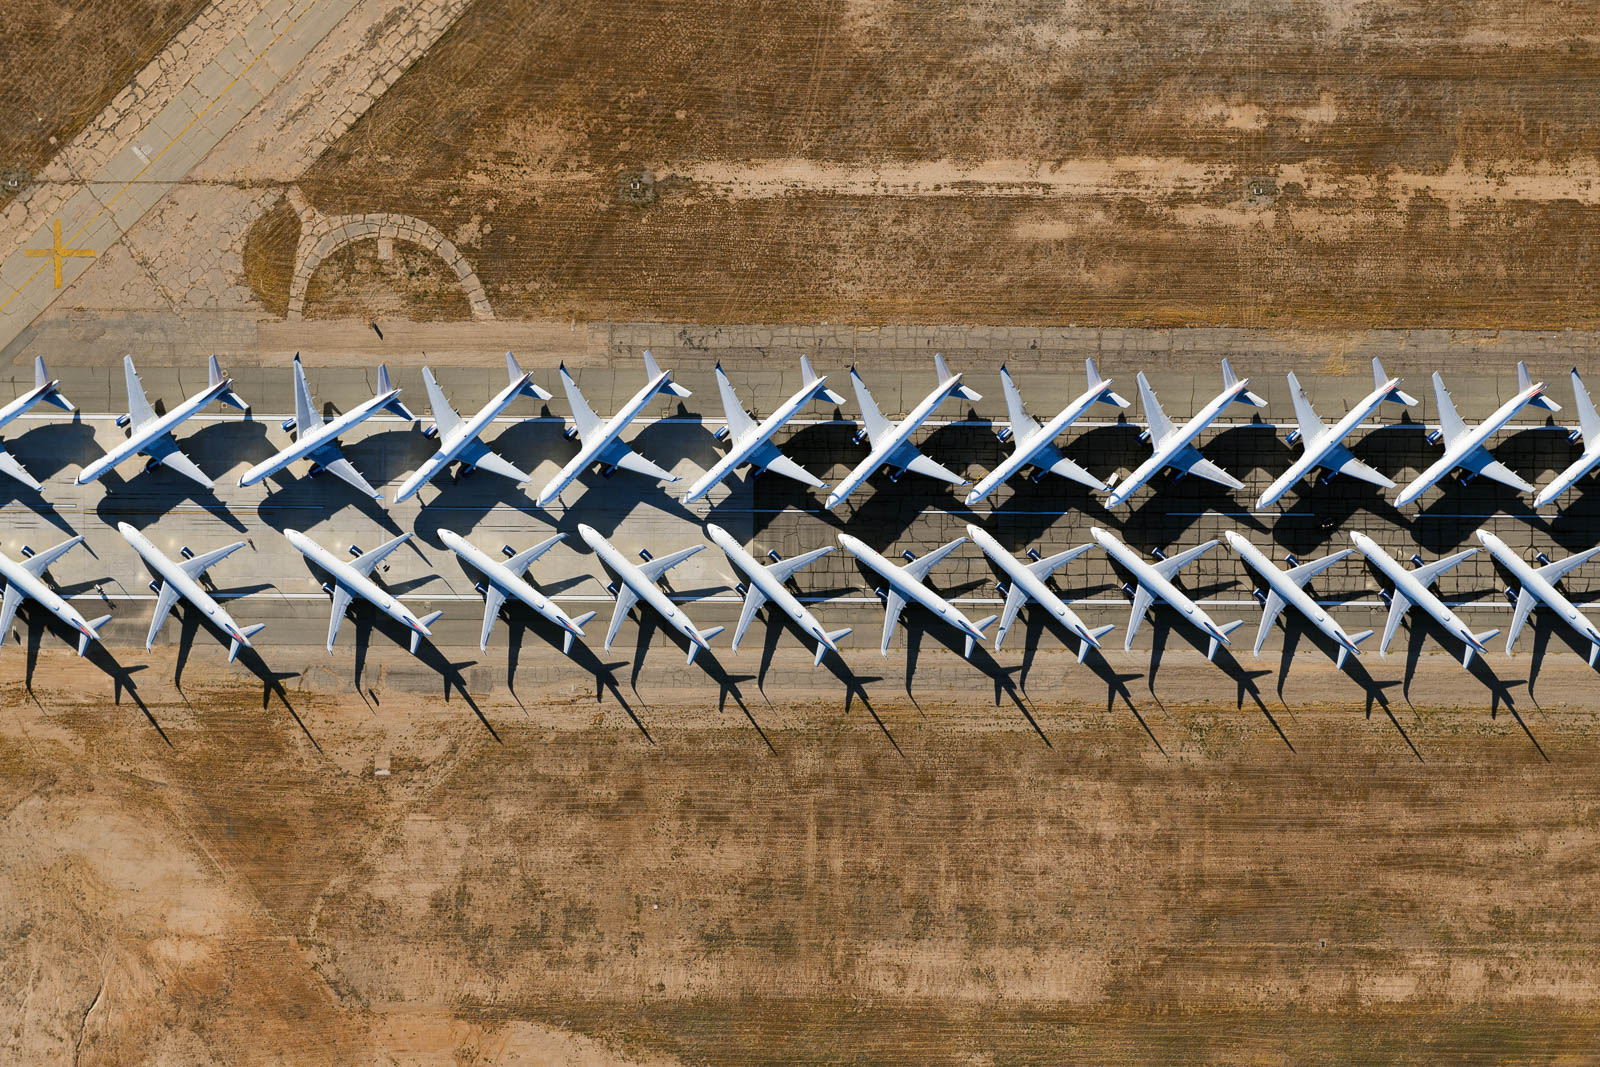 Southern California Logistics airport (KVCV) hosts the fleet of Delta airliners during the COVID-19 pandemic (May 2020)